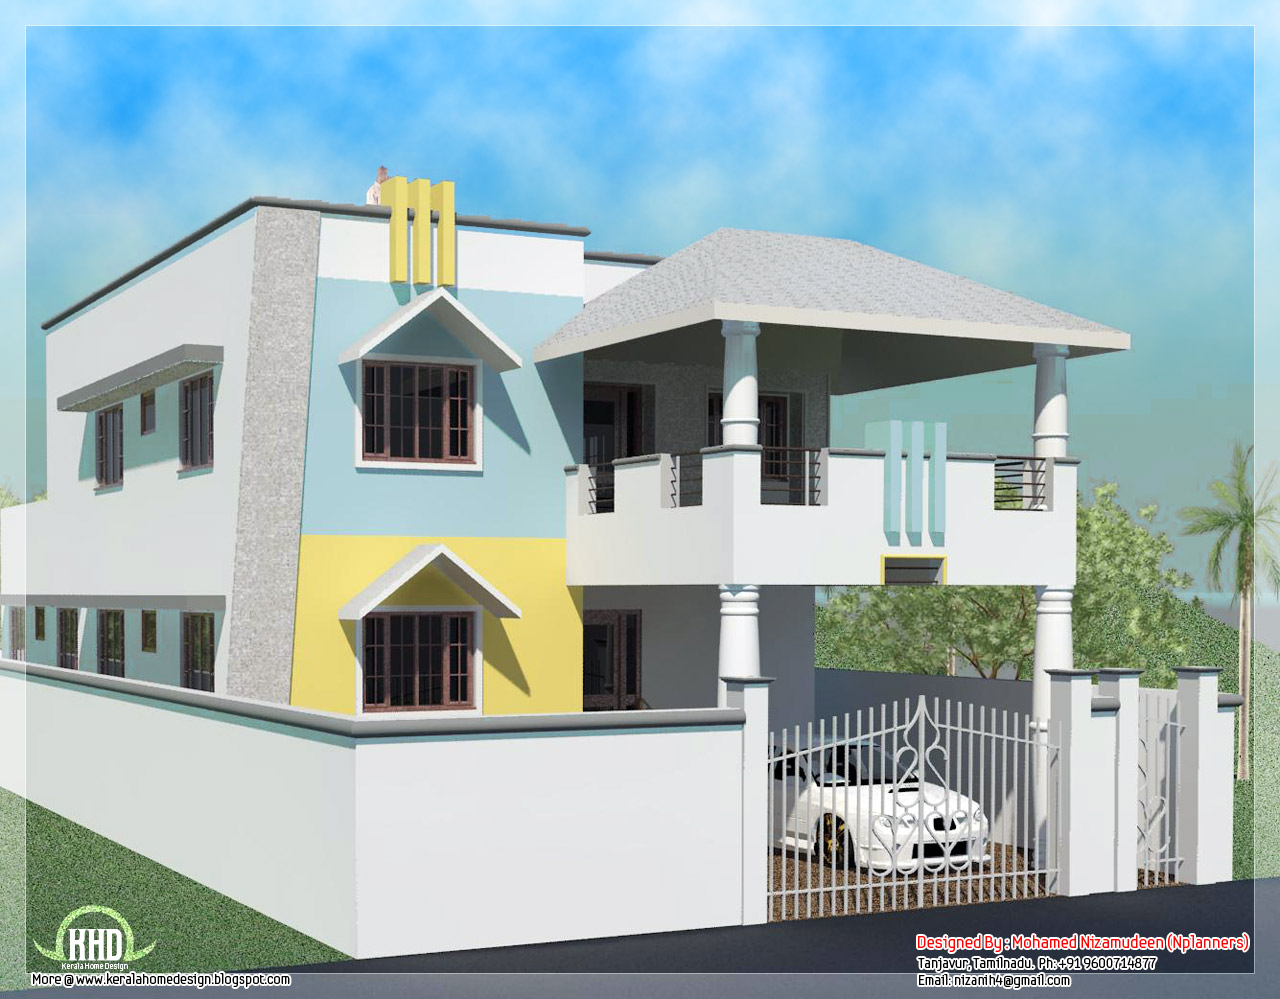 2200 sq feet minimalist tamilnadu style house kerala homes for Tamilnadu house models